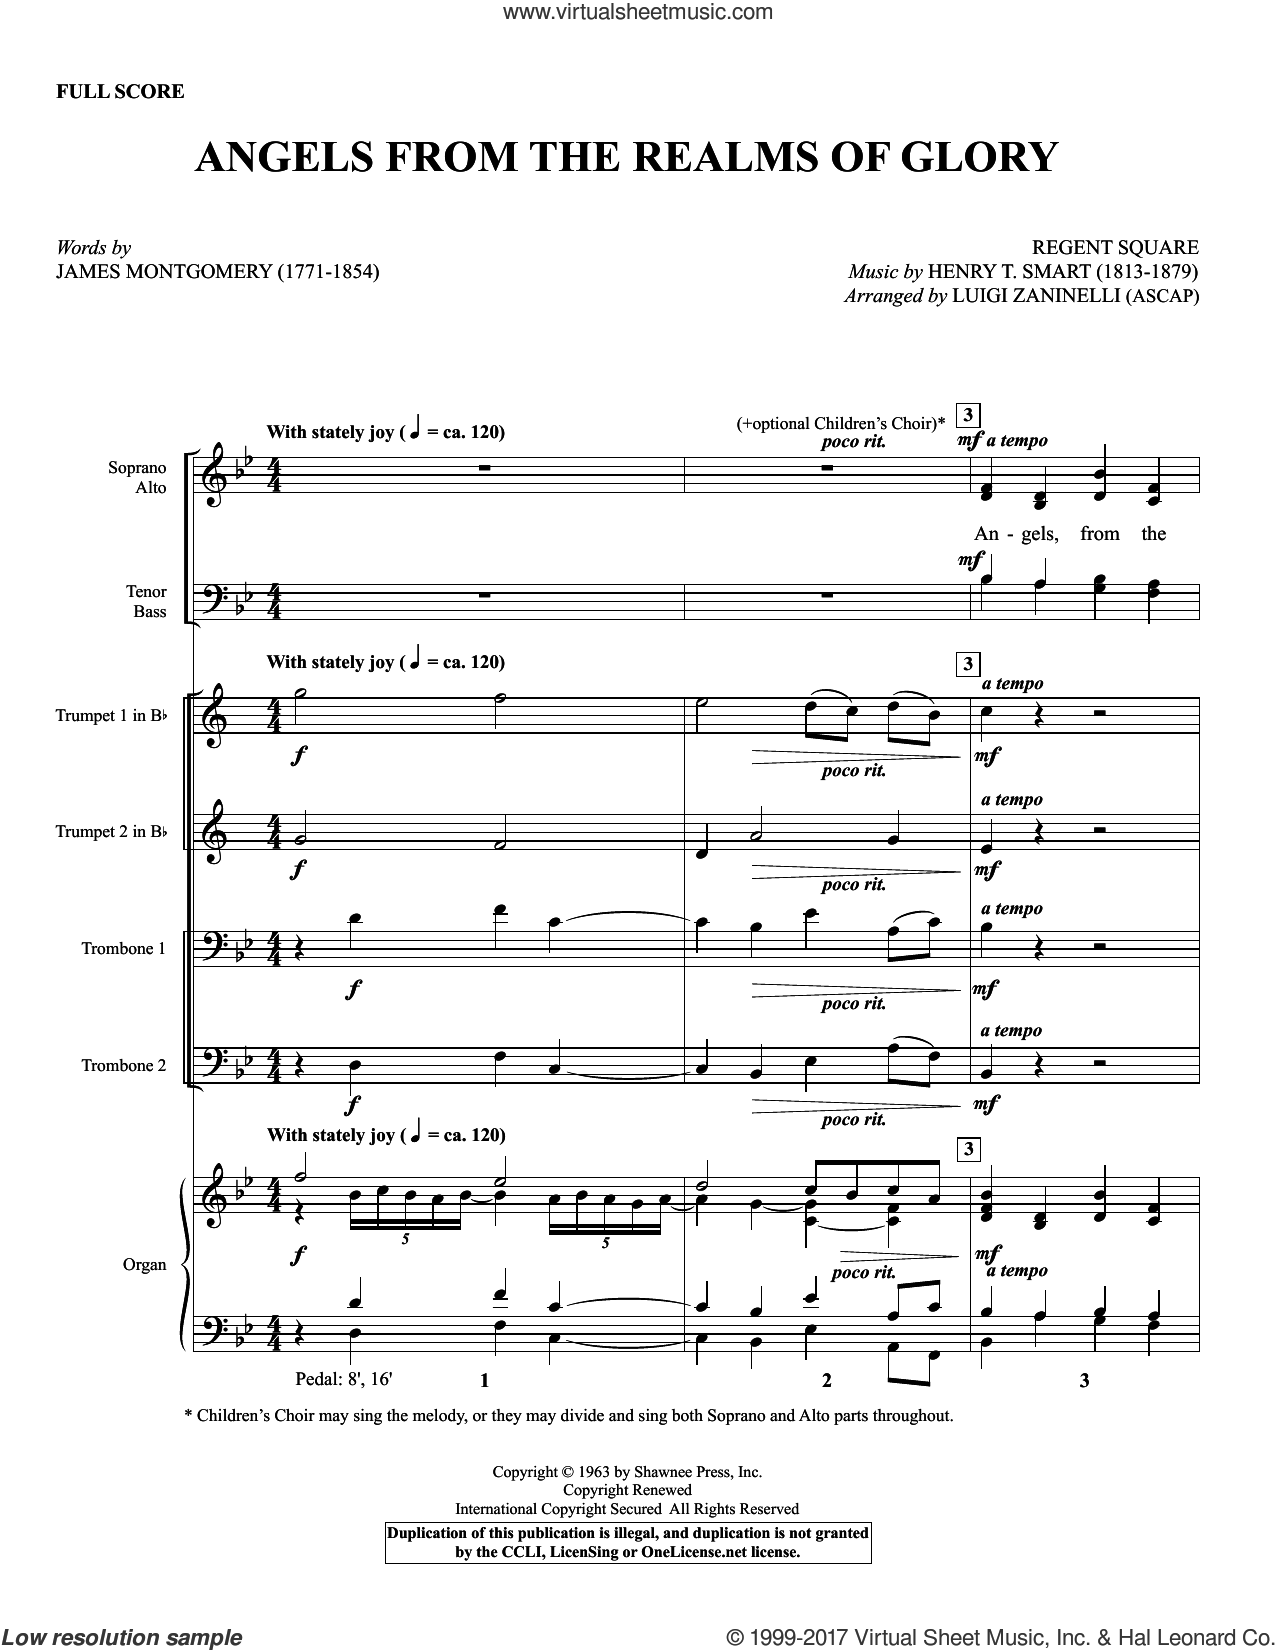 Angels from the Realms of Glory (COMPLETE) sheet music for orchestra/band by James Montgomery, Henry T. Smart and Luigi Zaninelli, intermediate skill level